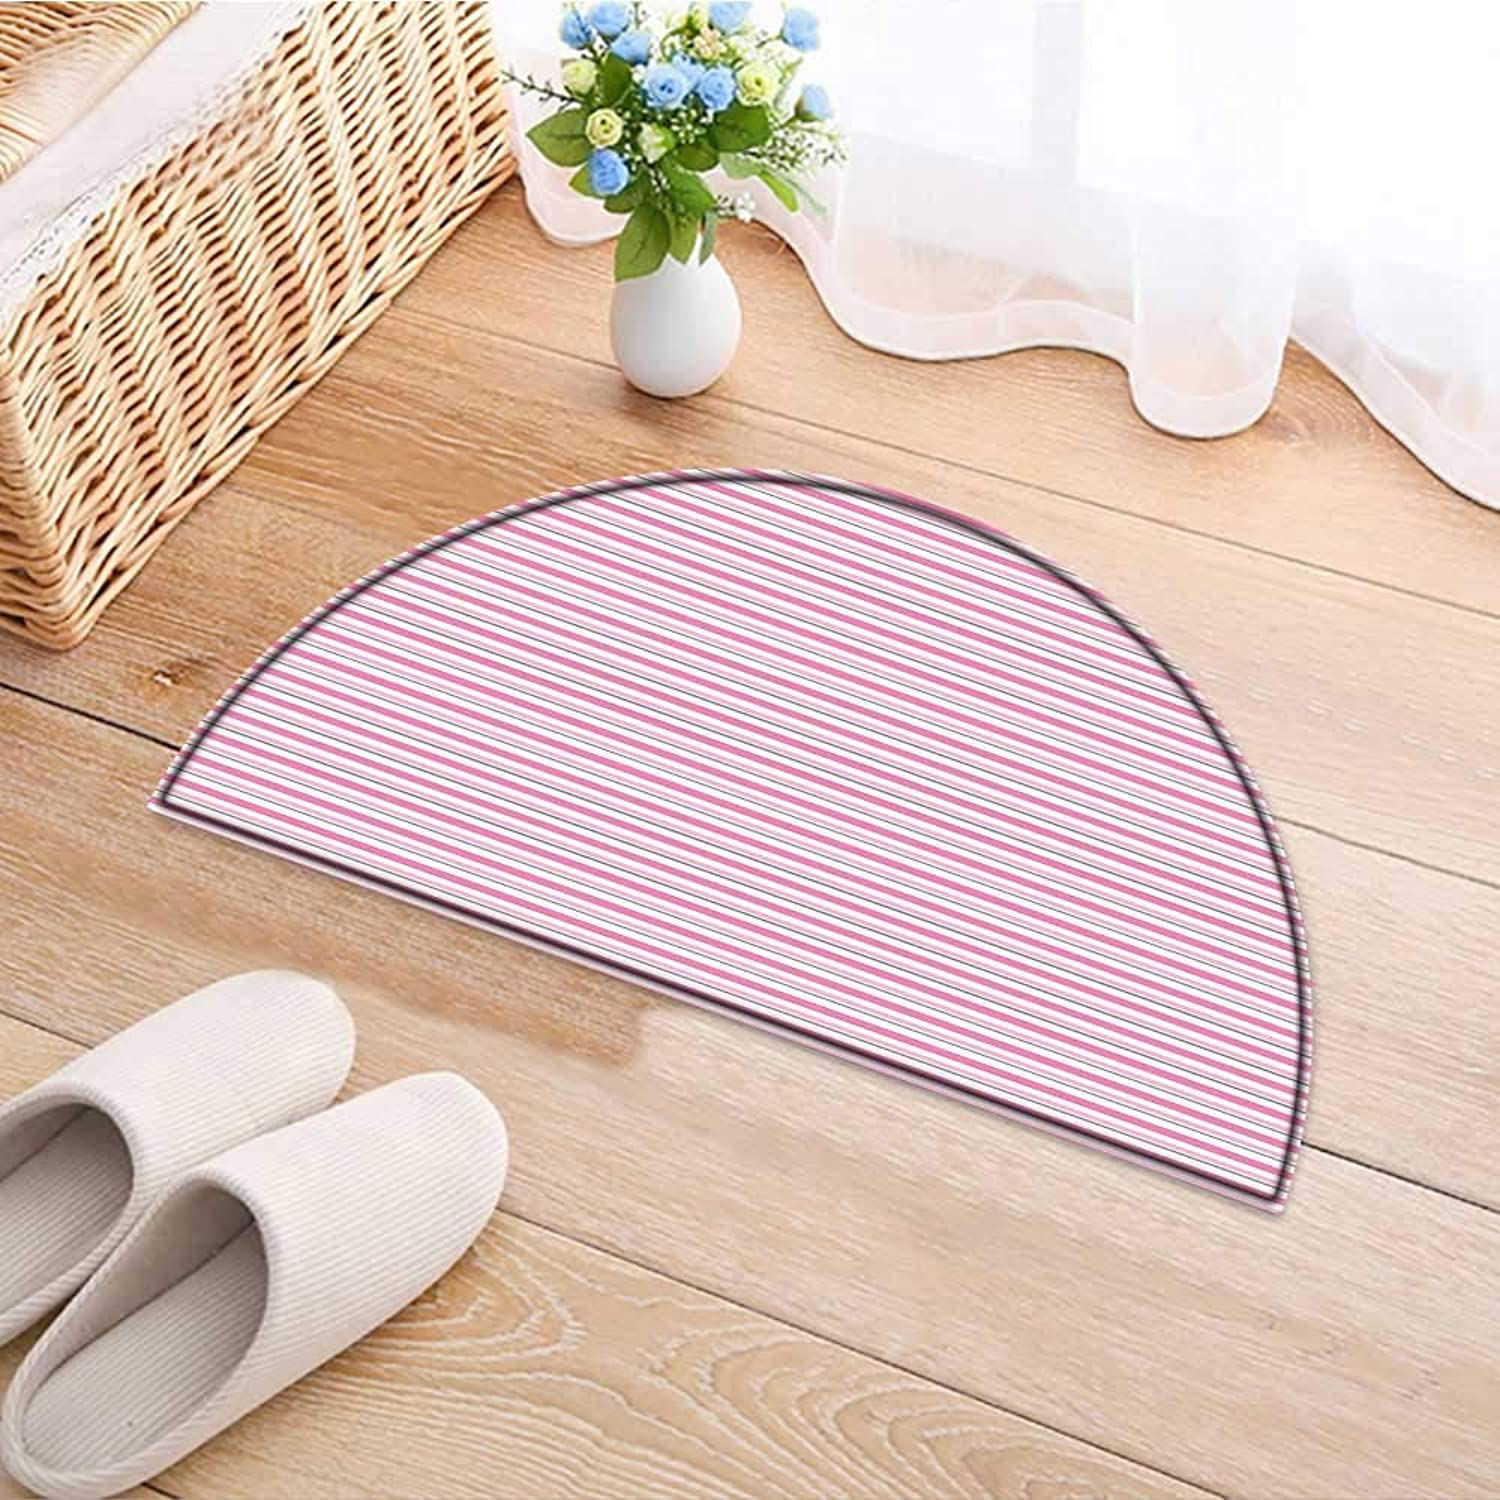 Semicircle Rug Kid Carpet Toned and Grey Lines on White Backdrop Striped Pattern Modern Design White Pink Home Decor Foor Carpe W39 x H28 INCH